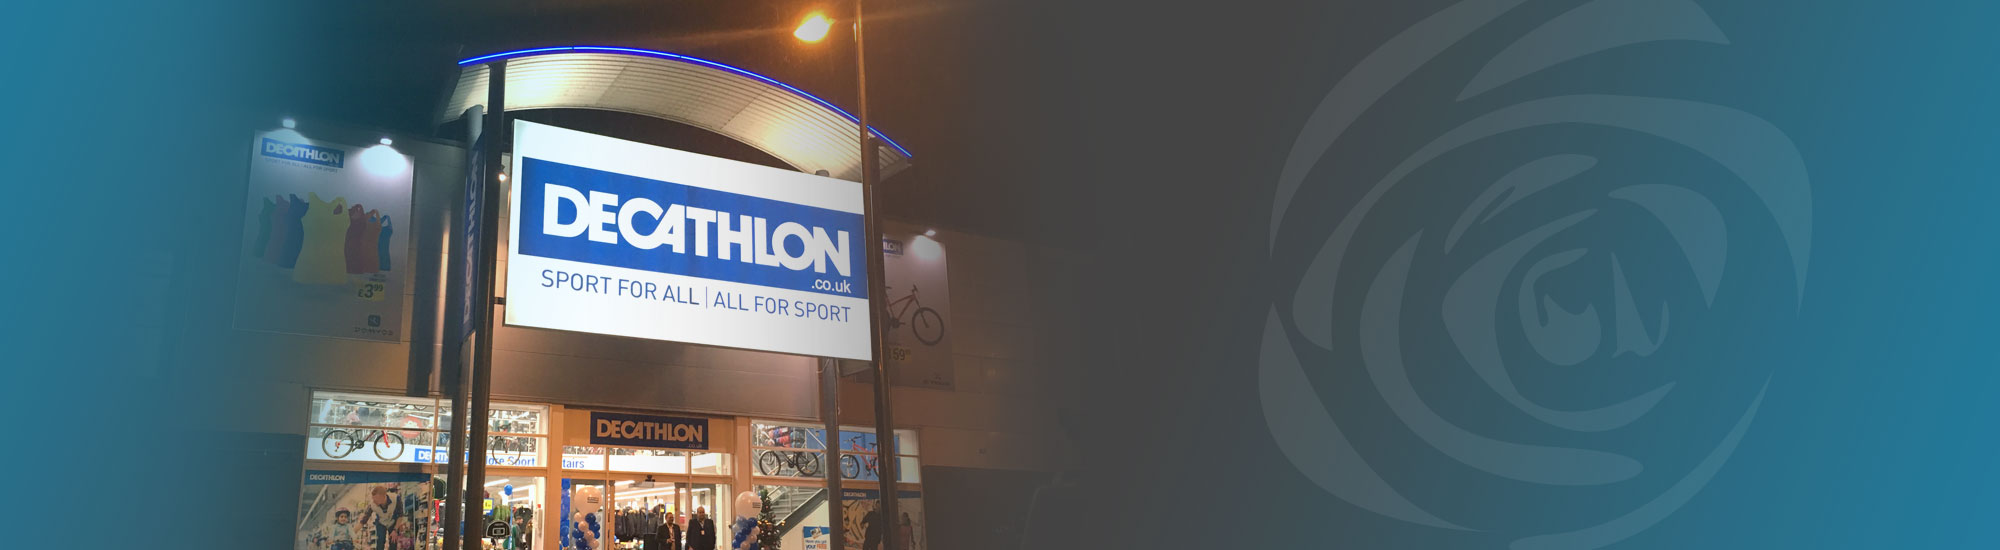 Shopfitting and Interior Fit-Out for Decathlon Stores